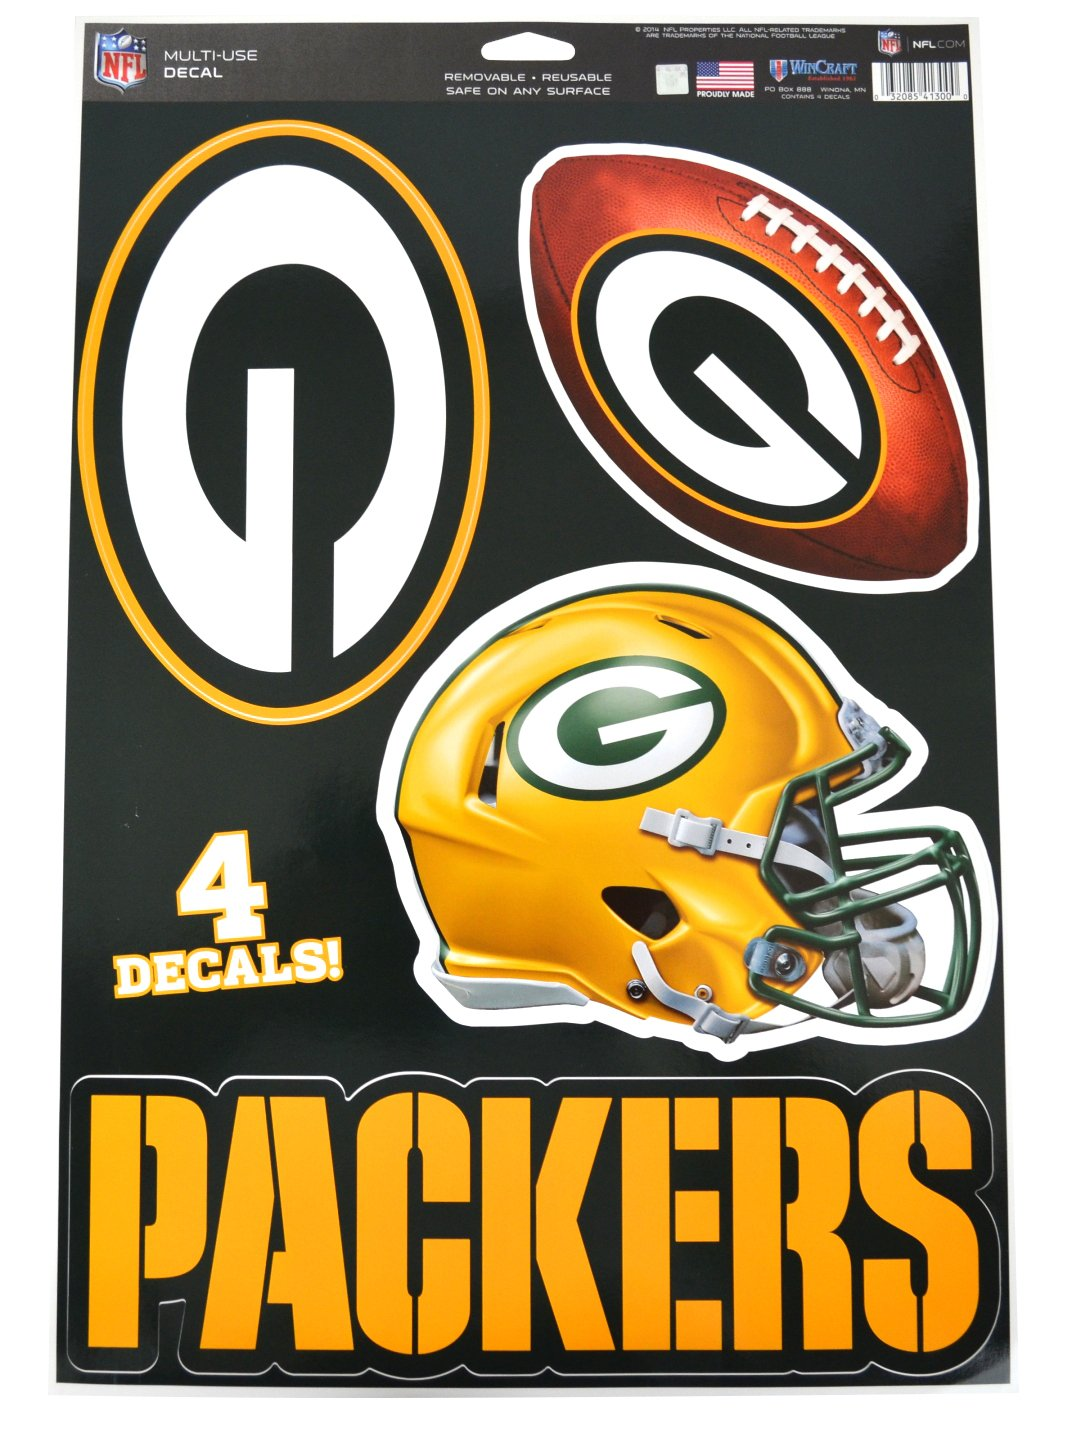 new concept 01a44 de08c Official National Football League Fan Shop Licensed NFL Shop Multi-use  Decals (Green Bay Packers)